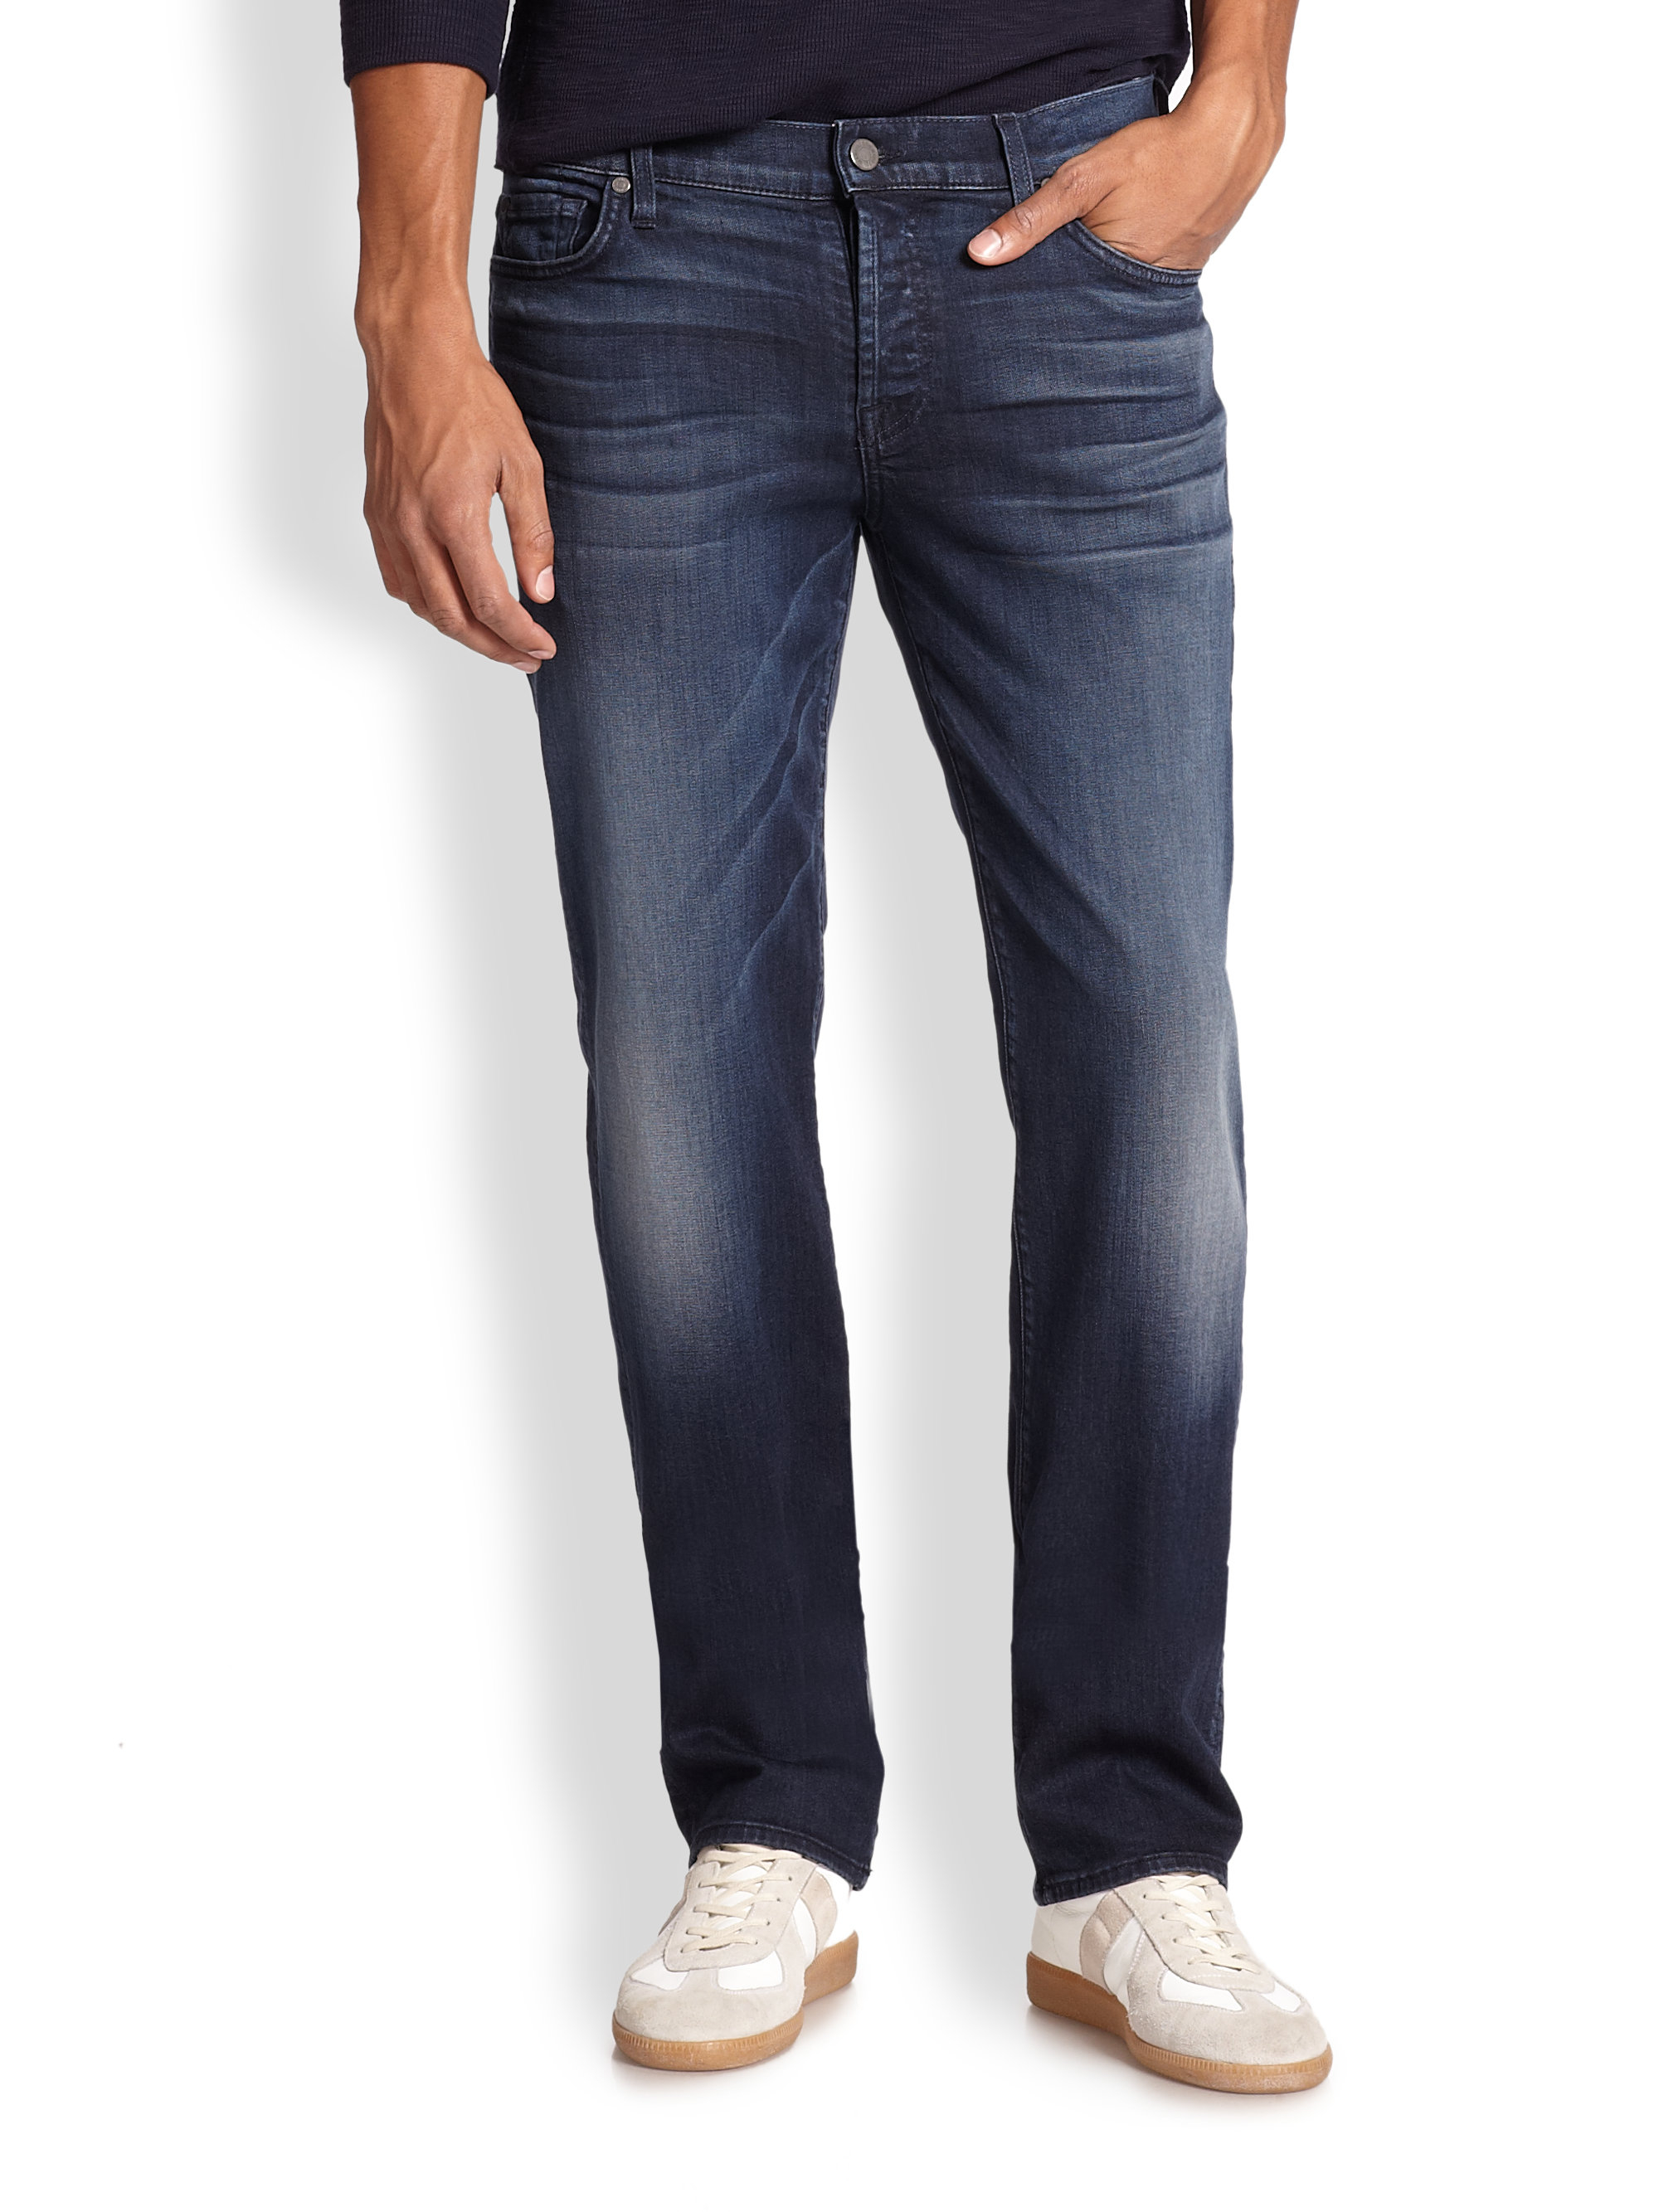 lyst 7 for all mankind luxe performance standard straight leg jeans in blue for men. Black Bedroom Furniture Sets. Home Design Ideas